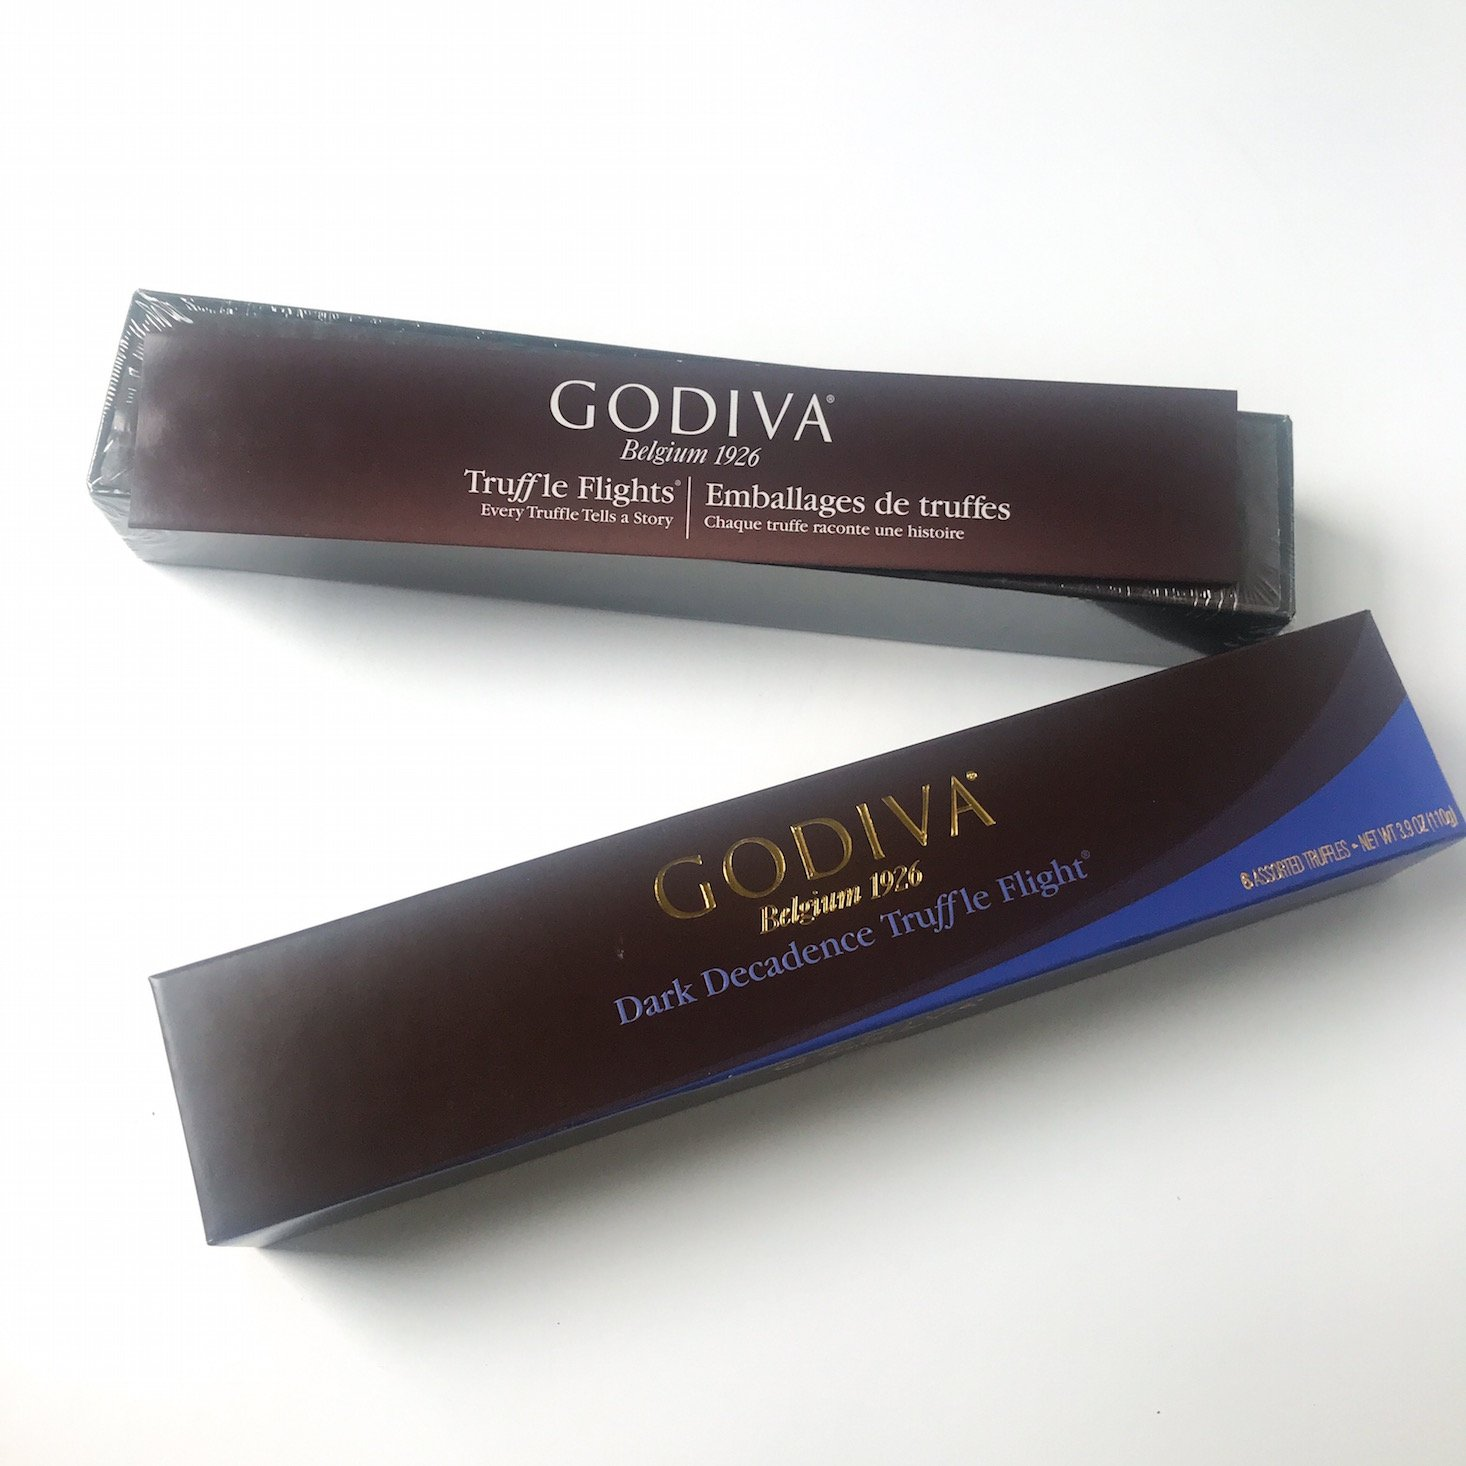 Godiva Snack Lovers Month 3 Chocolate of the Month Club Review